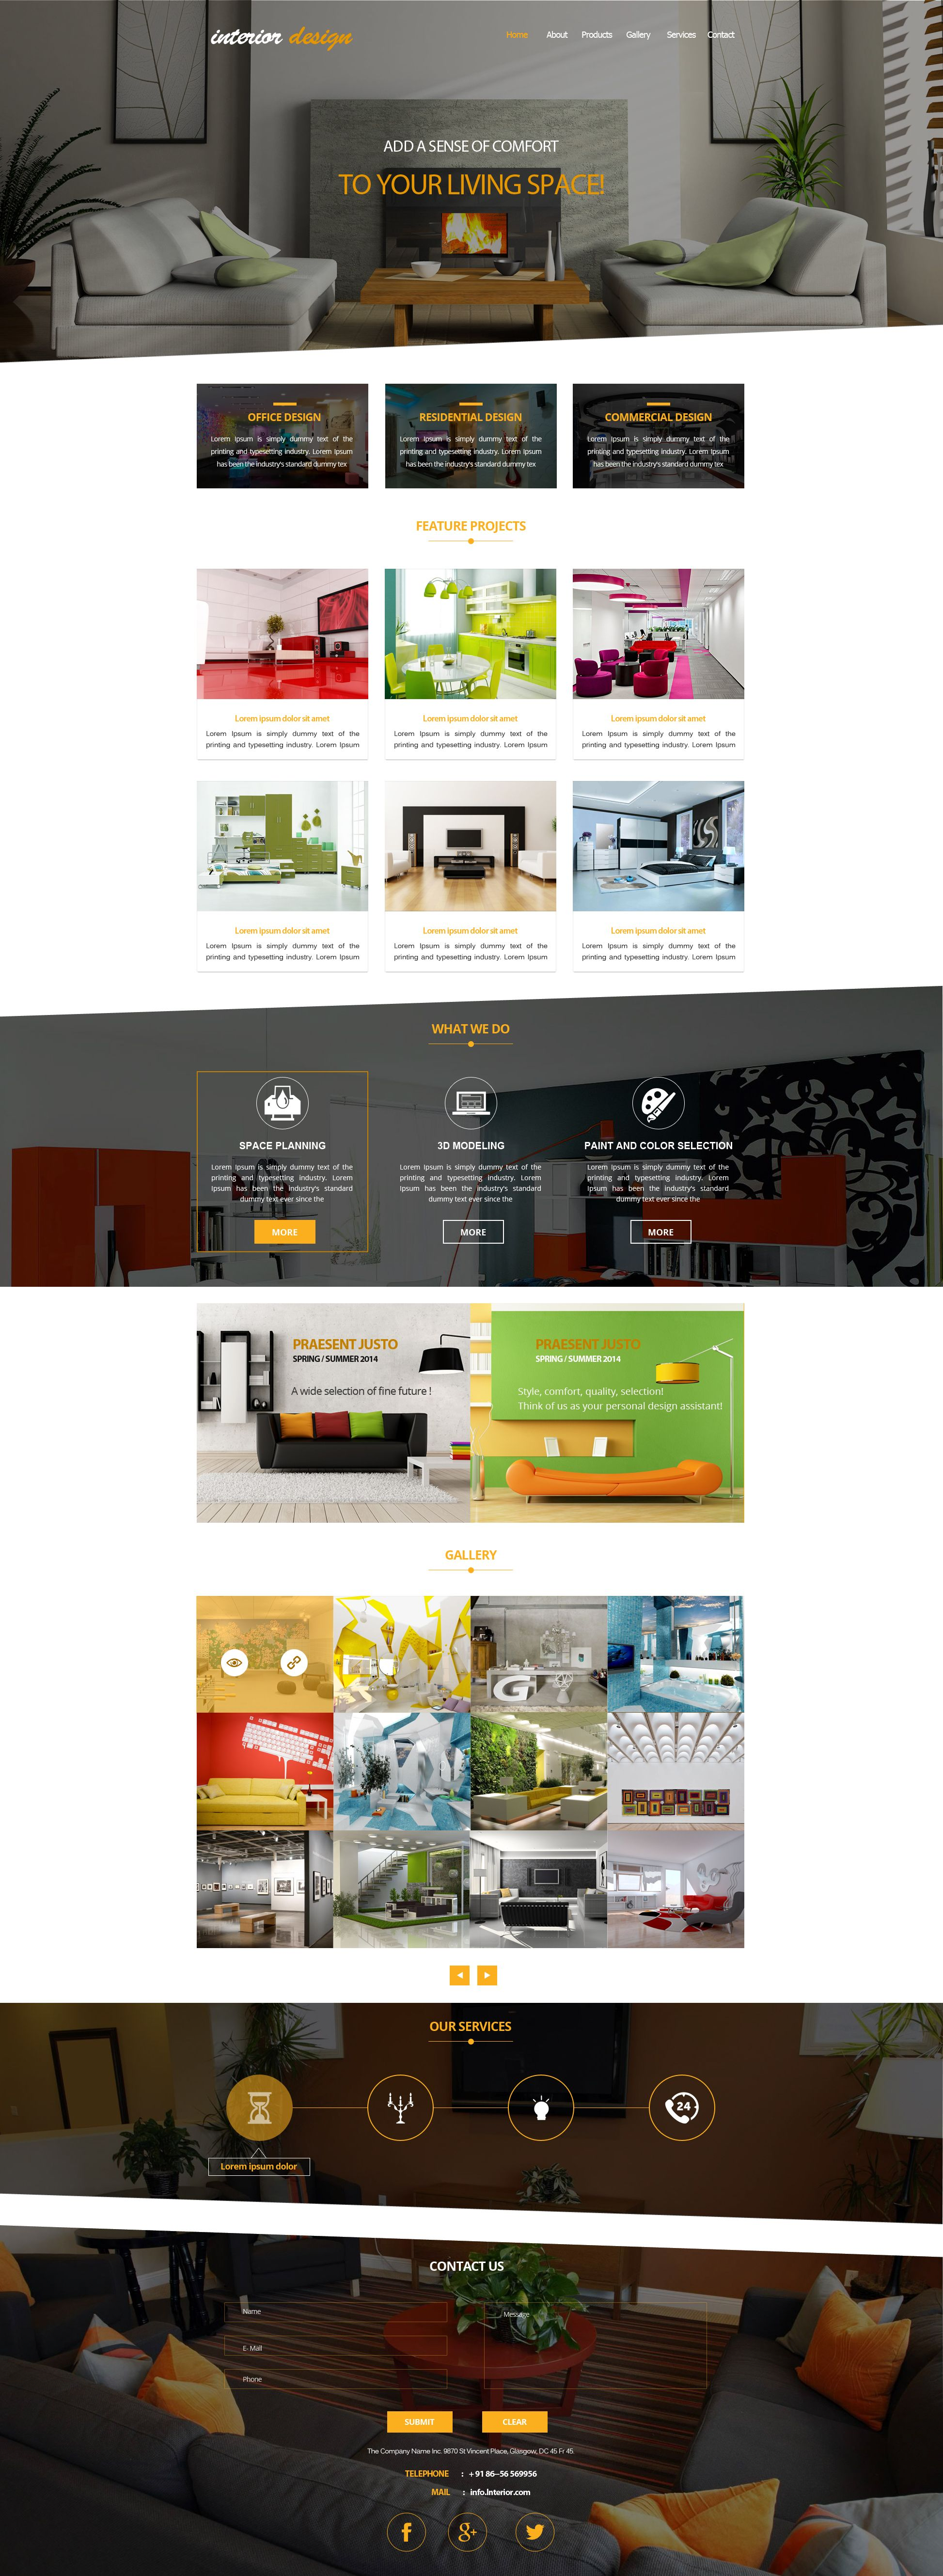 sell365 u0027s interior design template one of the best website